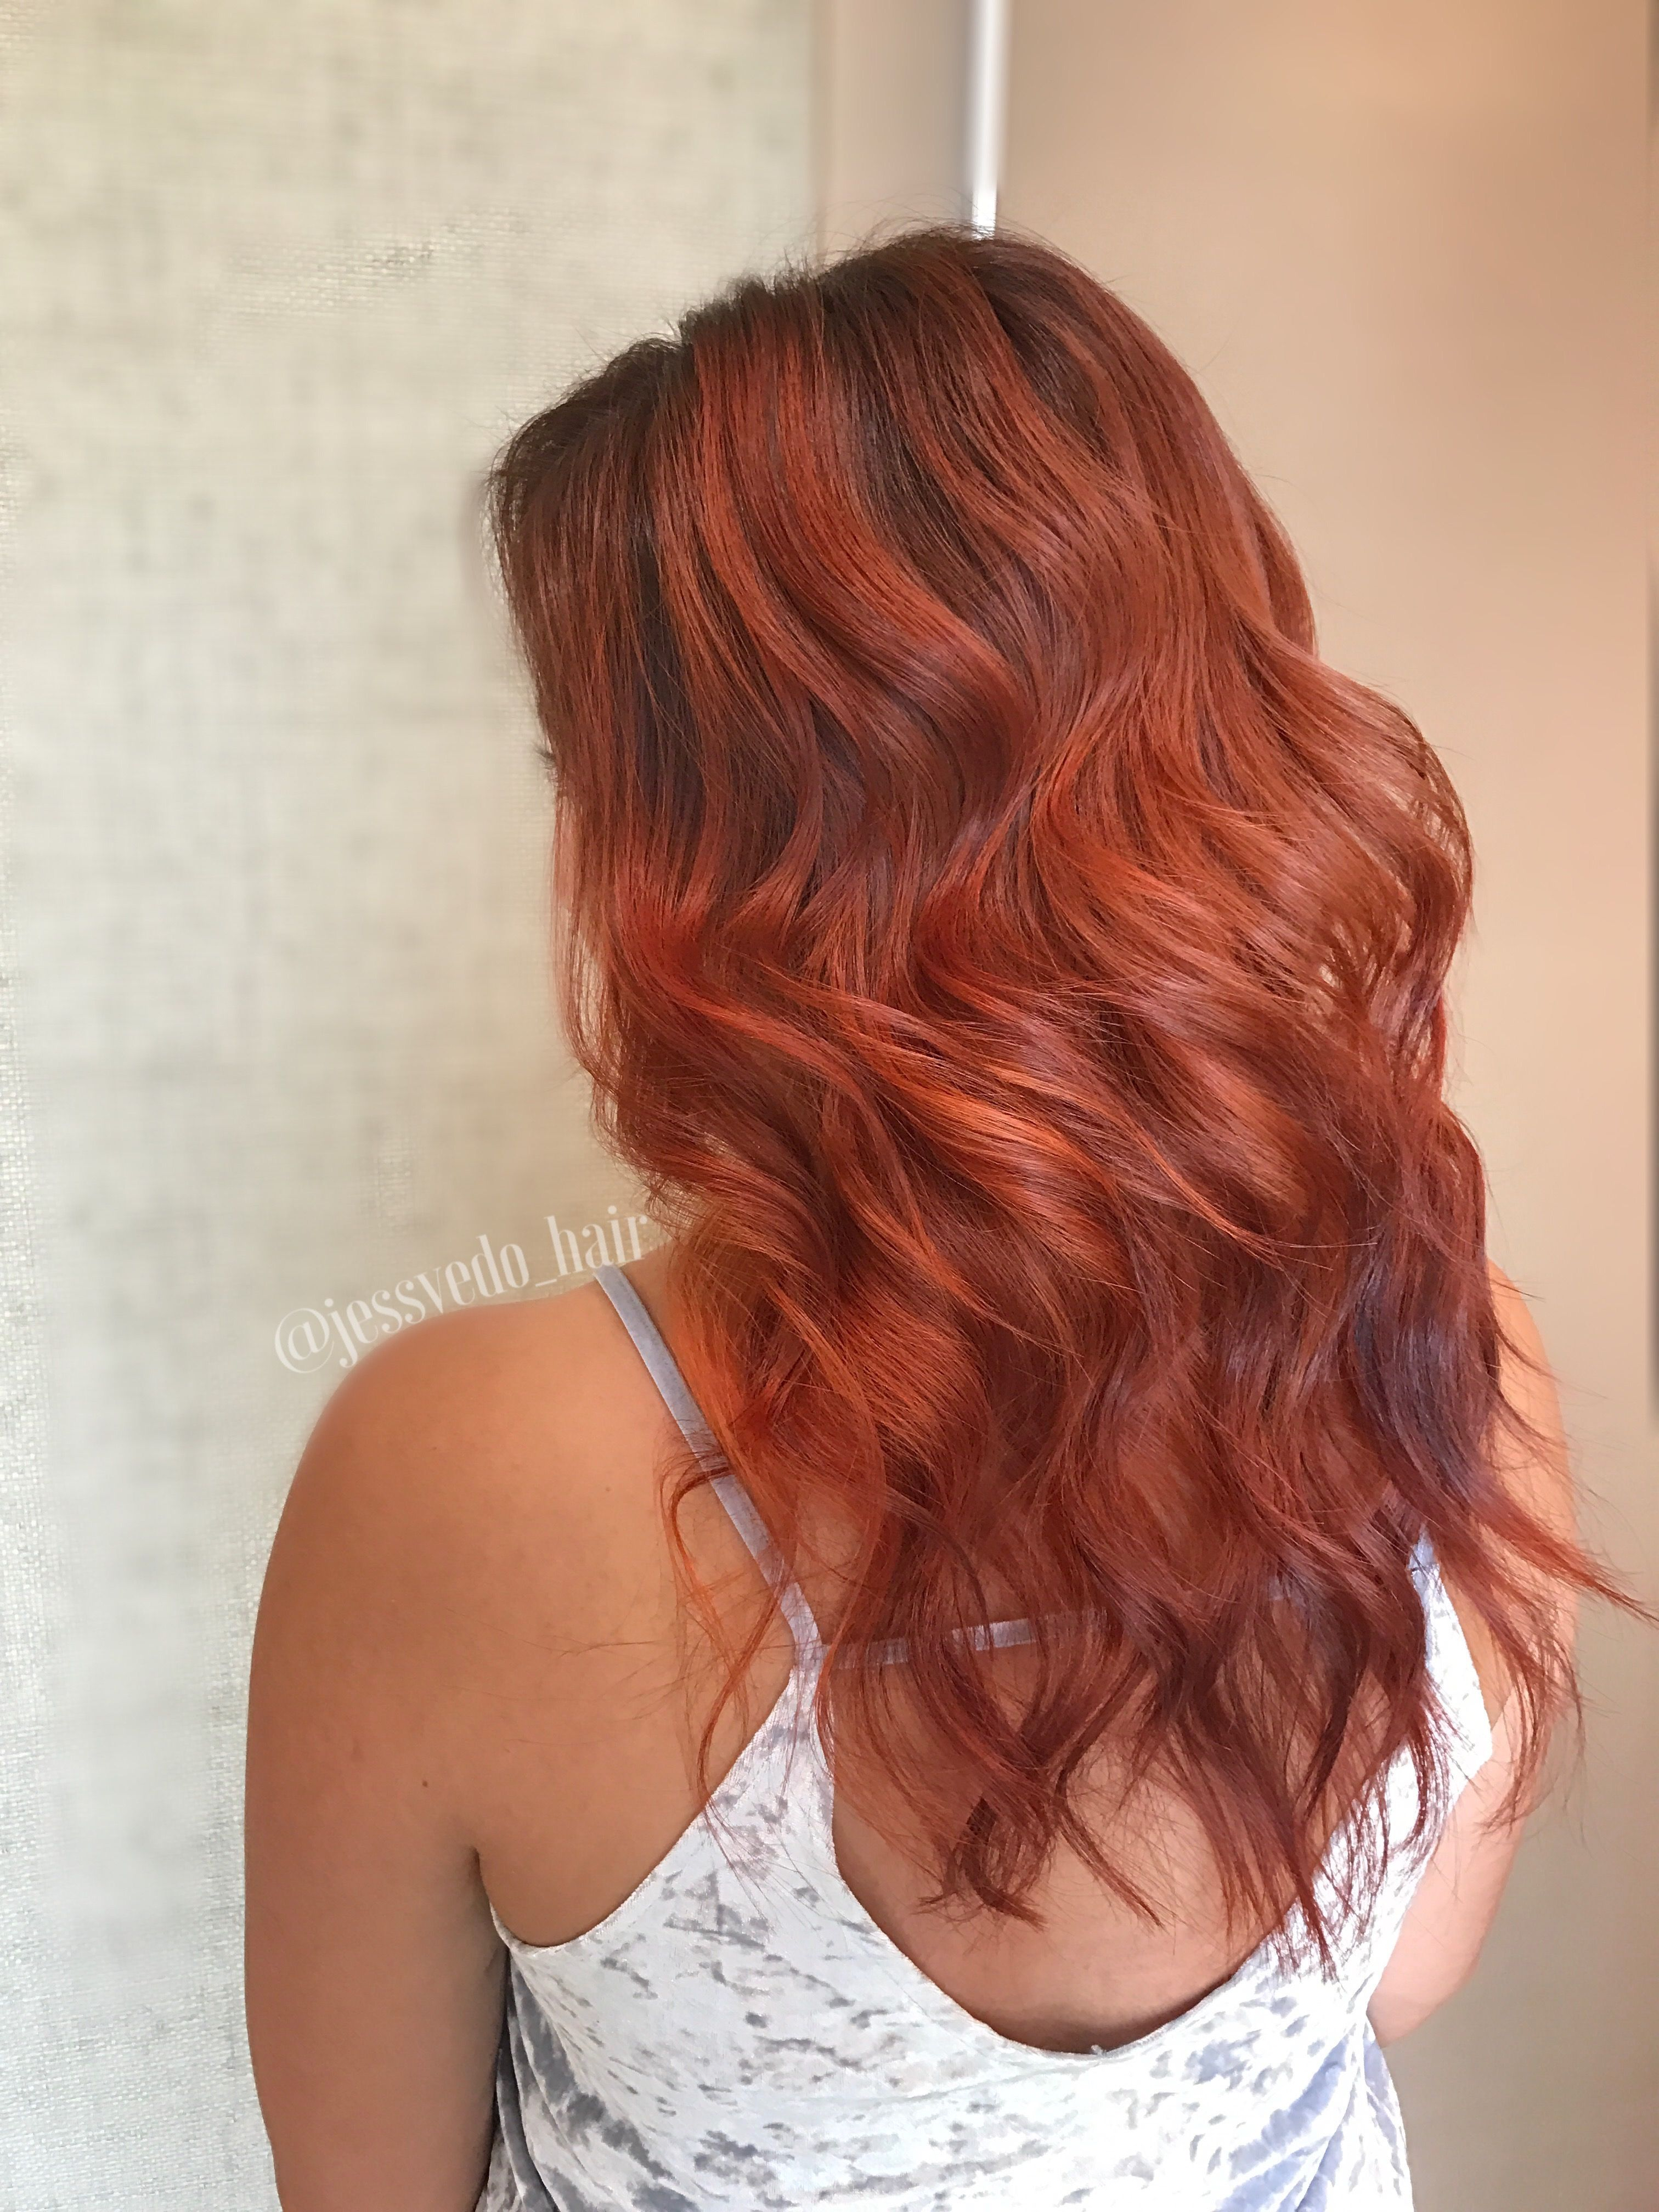 FALL 2017 copper ombré hair with a dark brown root! Curled